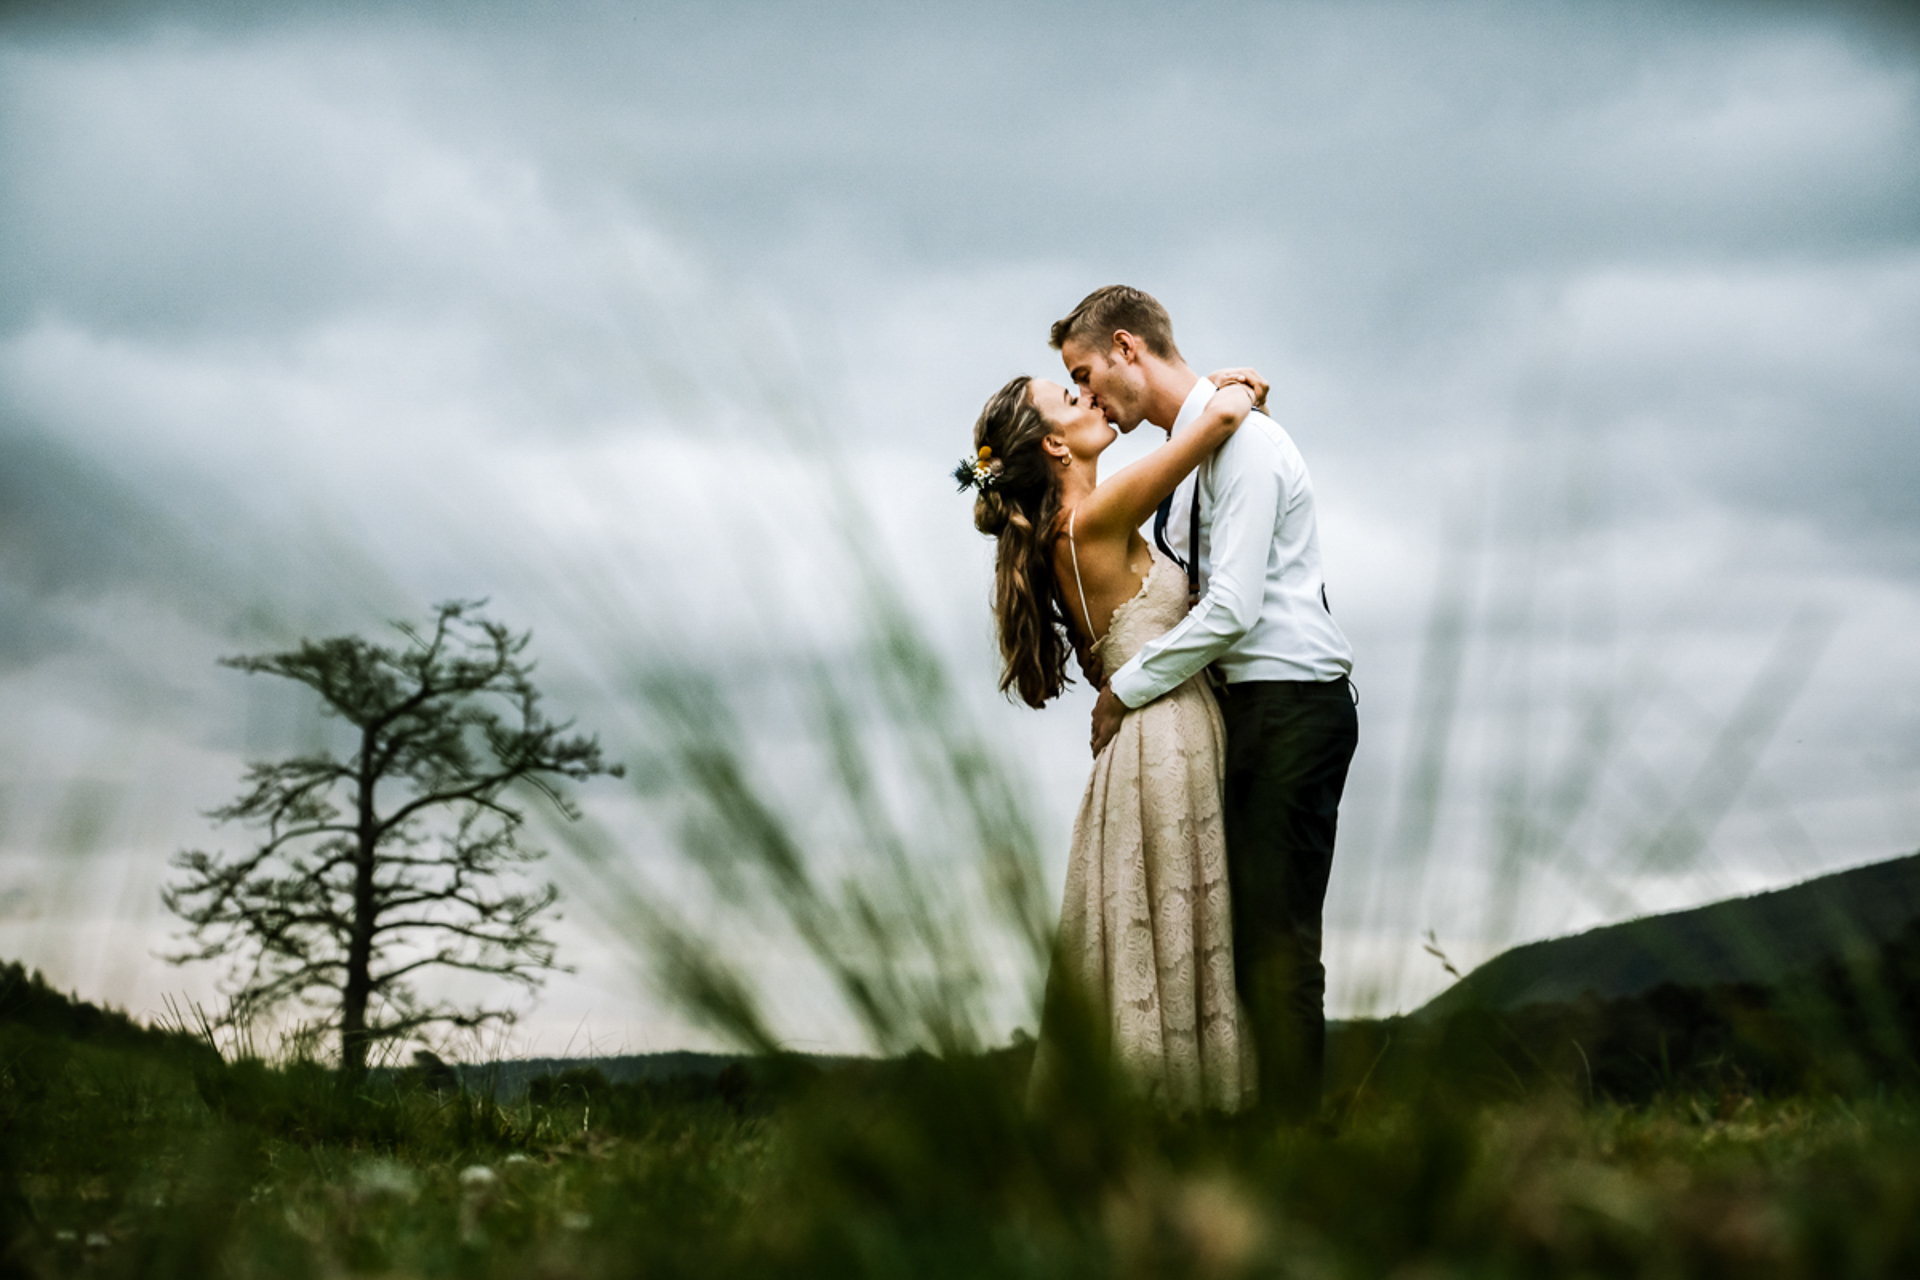 Swellendam, SA Wedding Couple Shoot | The overcast clouds made for a beautiful soft background